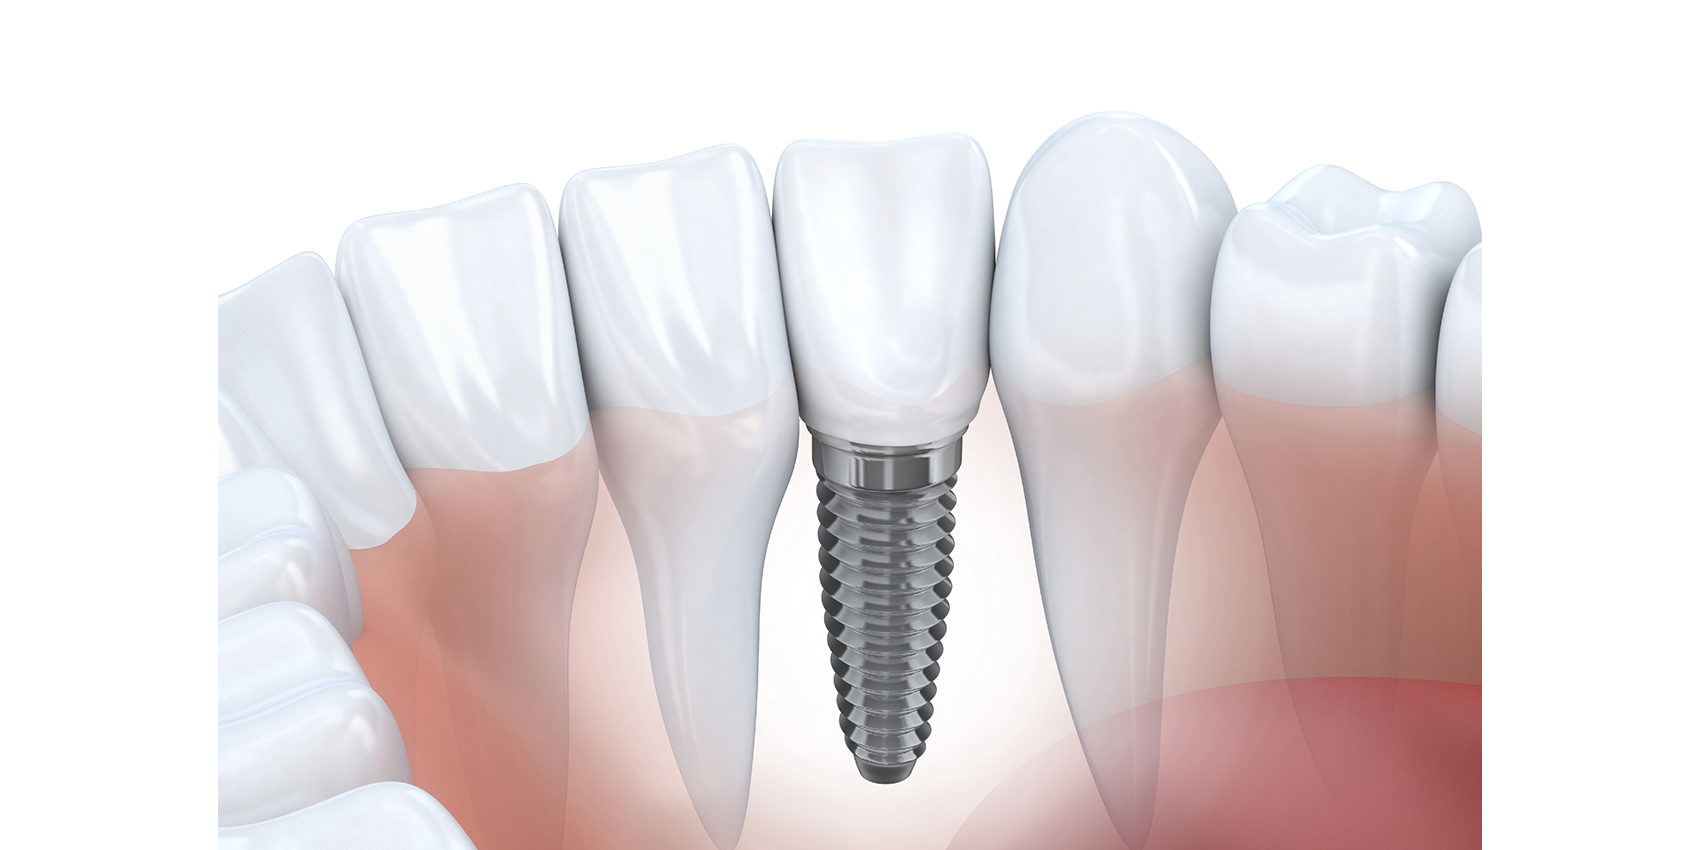 Implant dentaire : Comment s'y habituer ?